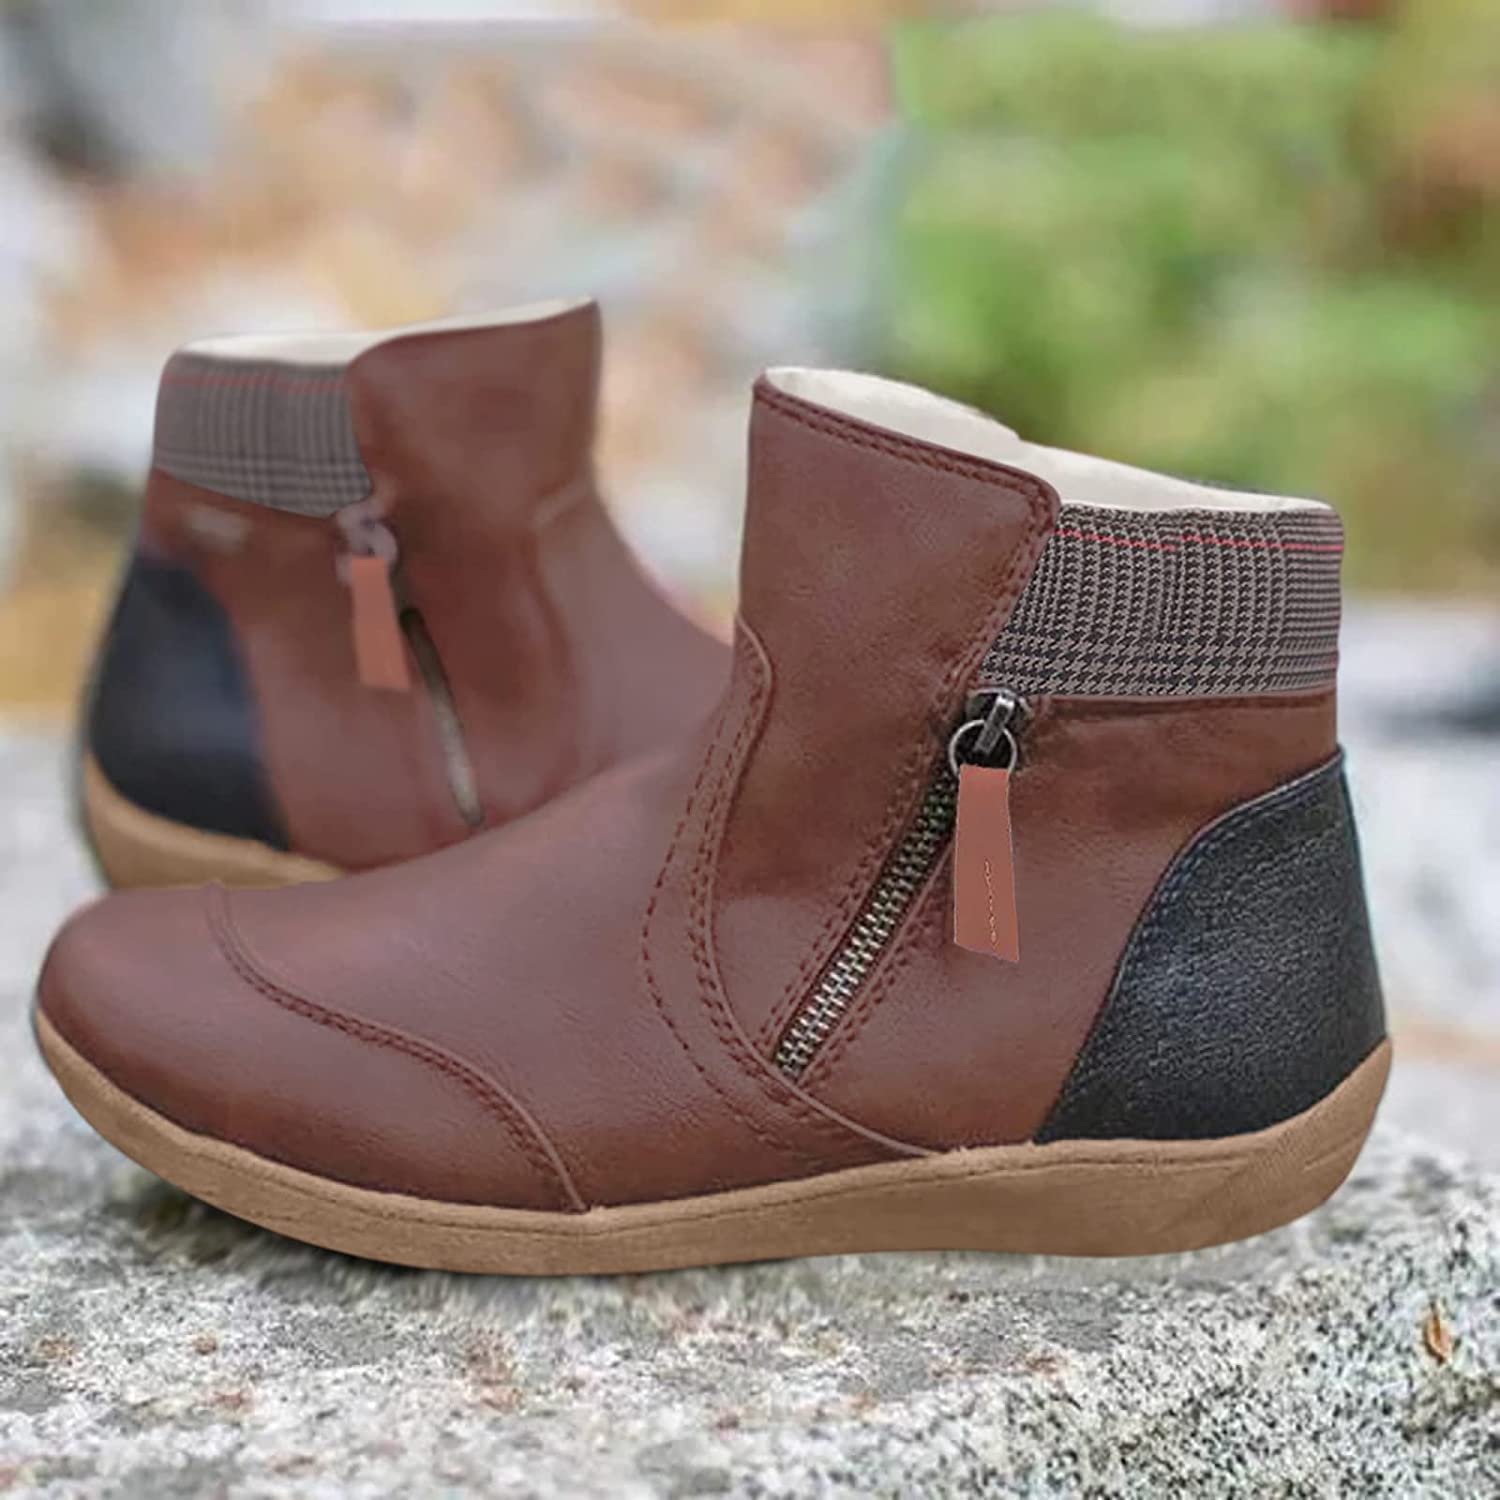 Womens Snow Boots Warm Ankle Booties Waterproof Comfortable Slip On Outdoor Fur Lined Lining Winter Shoes for Women